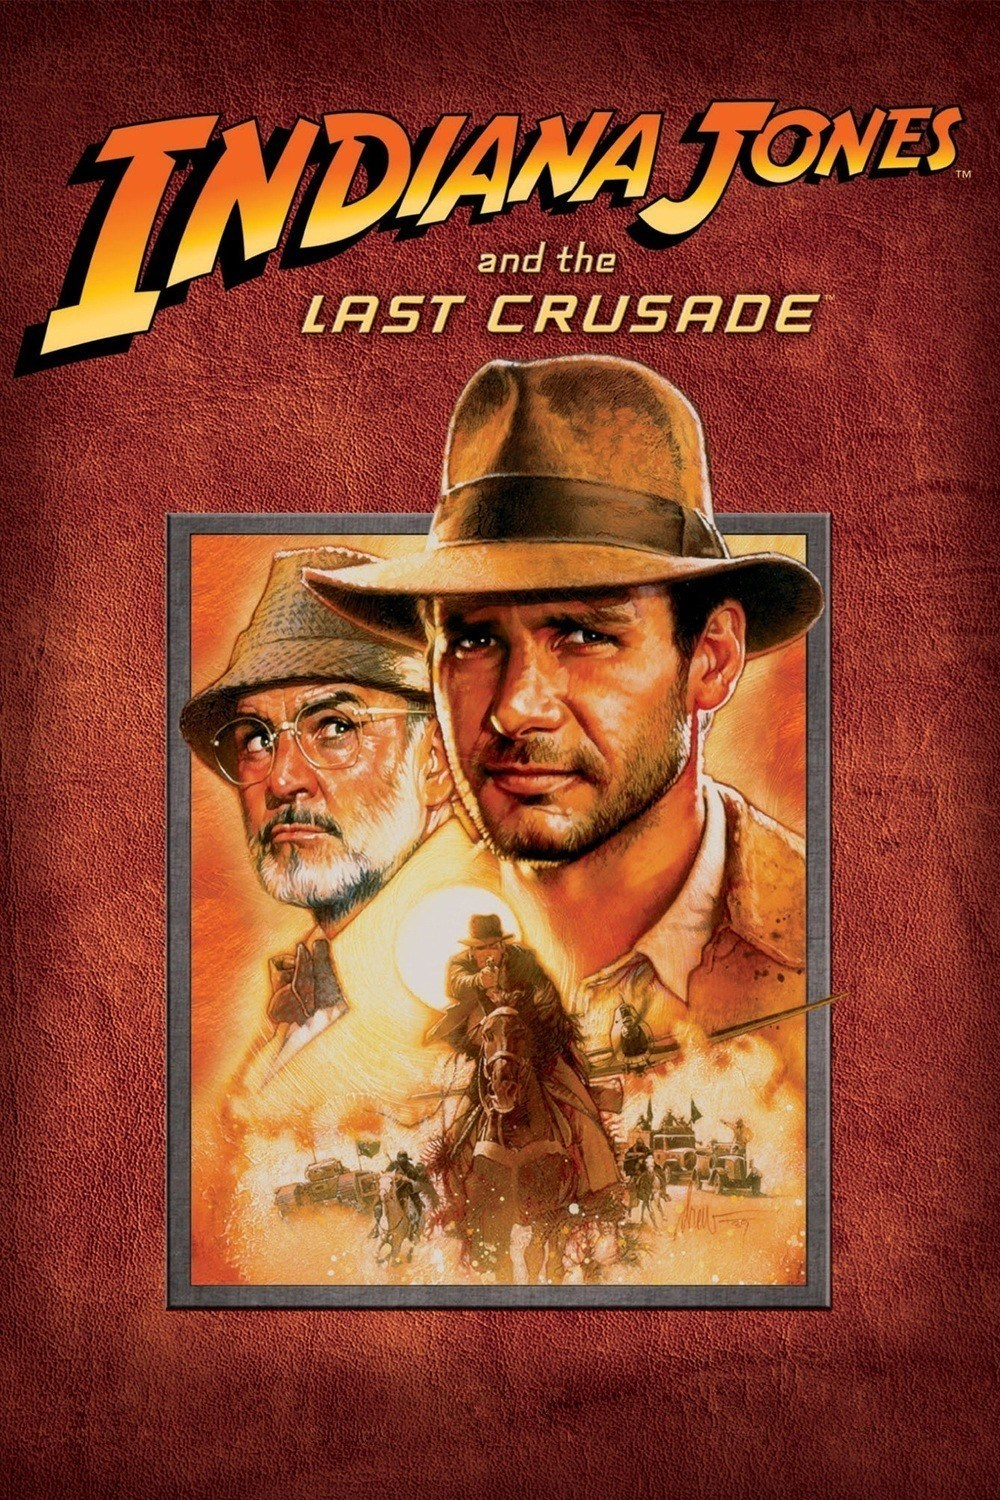 Indiana Jones and the Last Crusade (1989) ταινιες online seires xrysoi greek subs